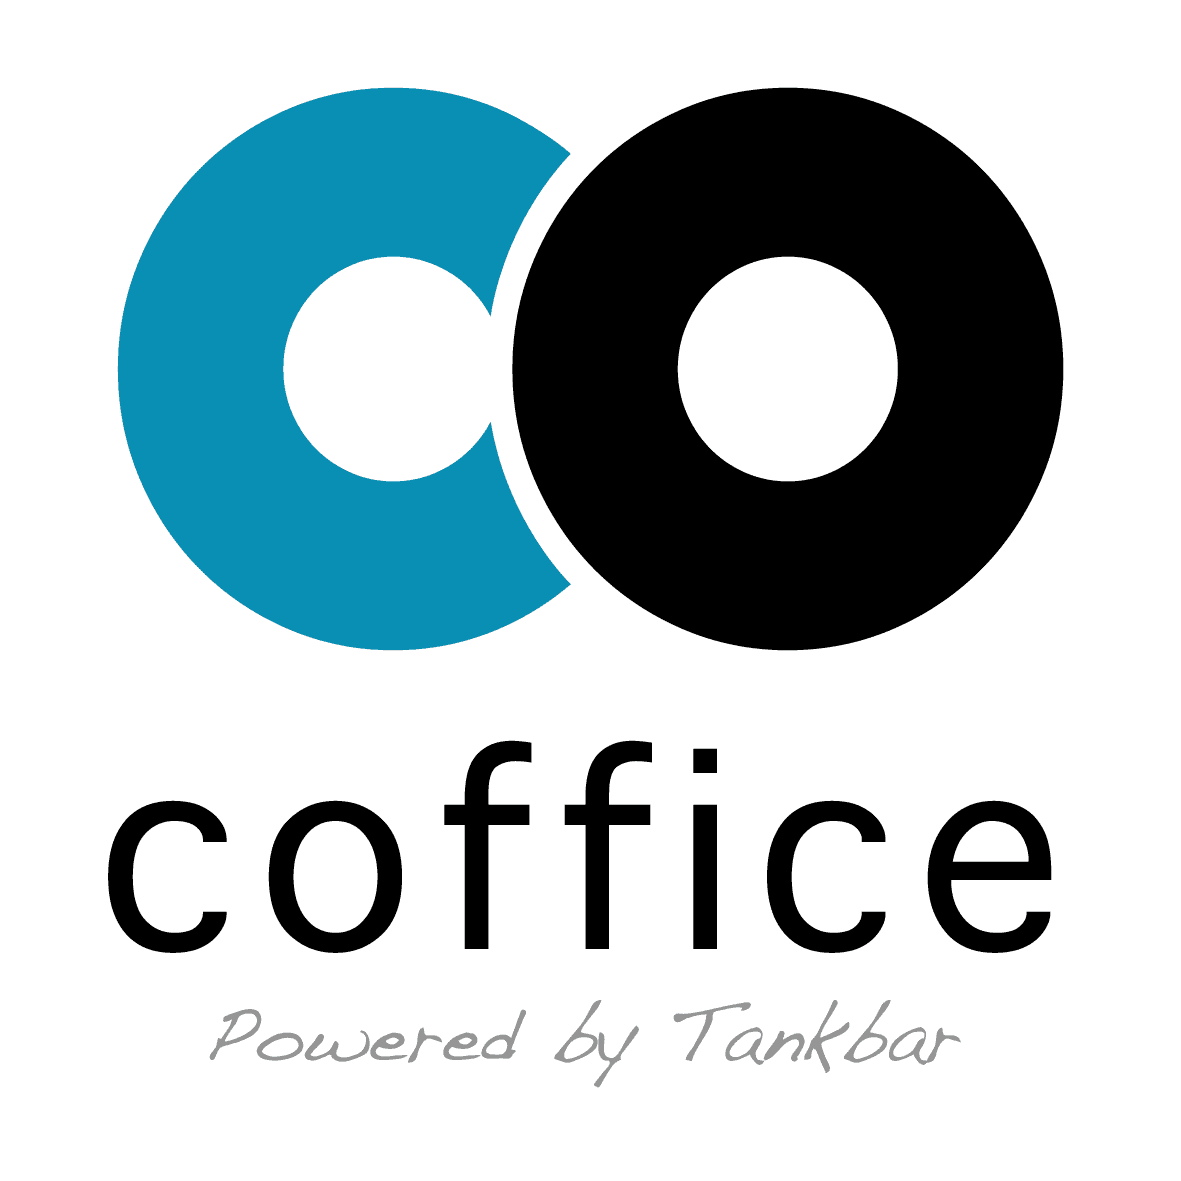 Coffice by Tankbar